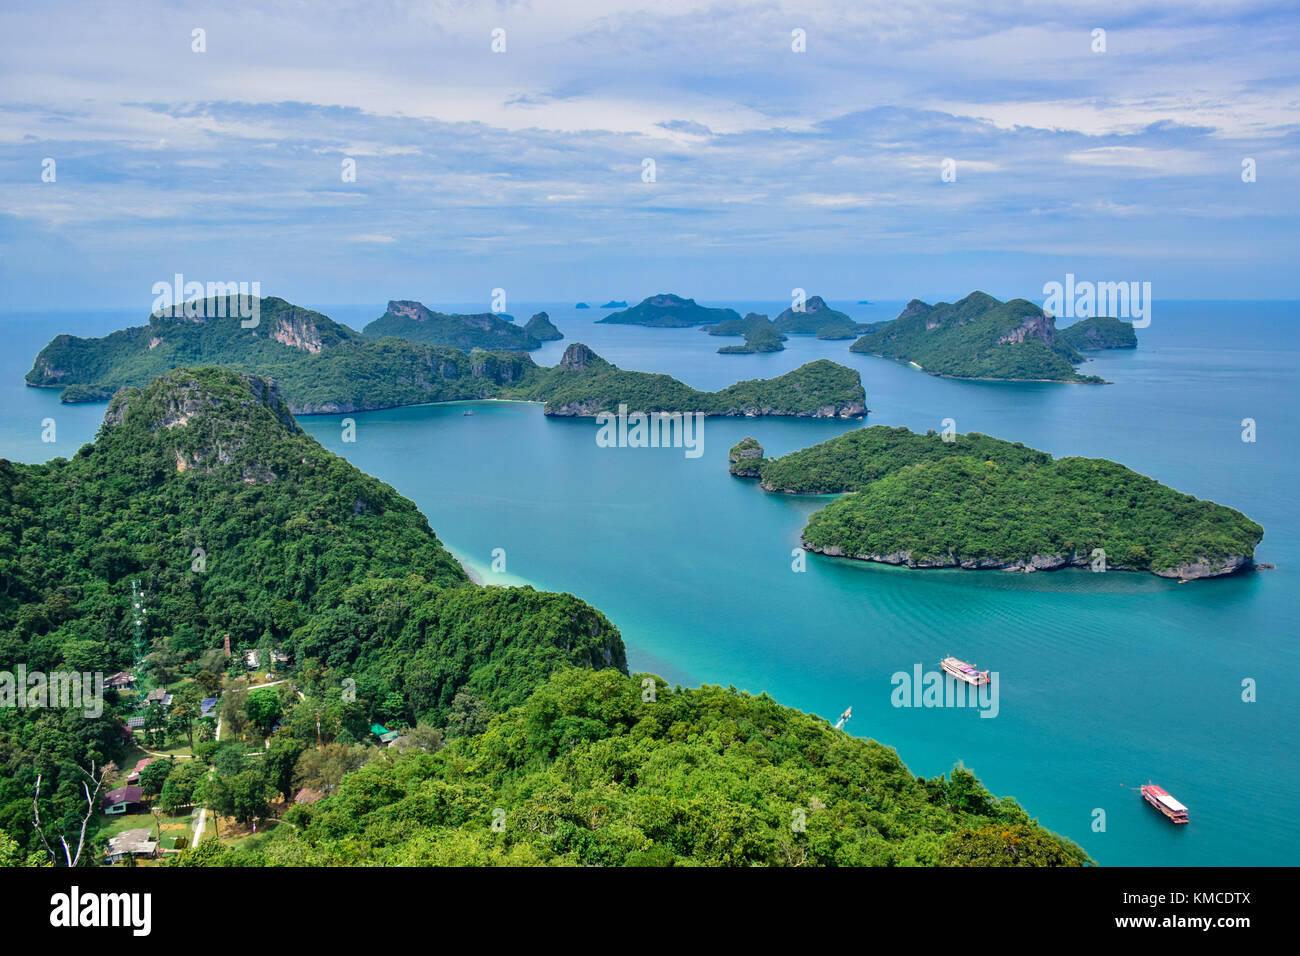 Beautiful seascape of Ang Thong Island National Marine Park near Samui island, Thailand, one of the most famous tourist vacation destination Stock Photo